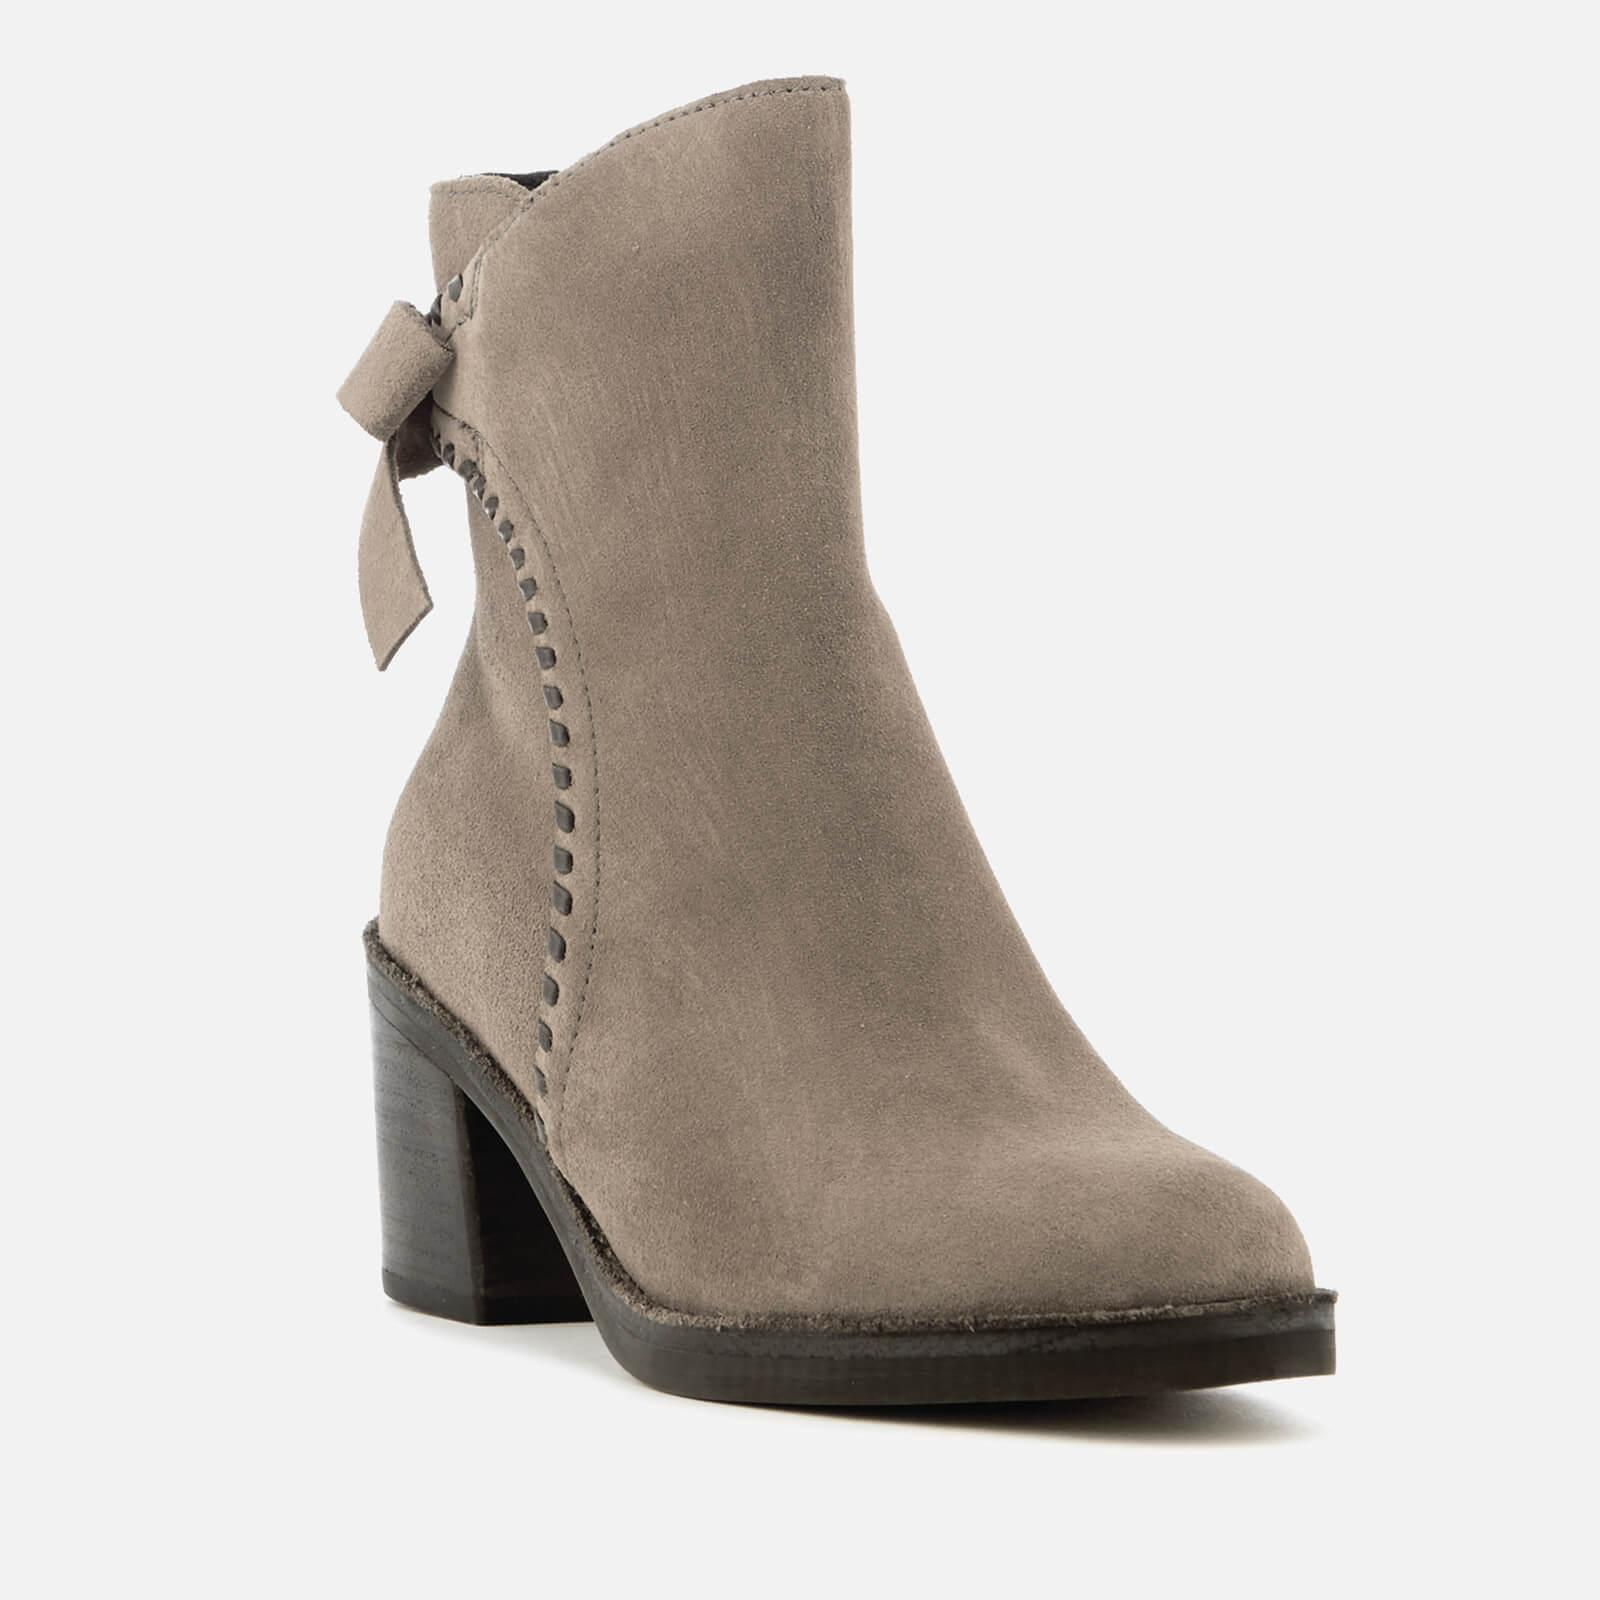 b774210dadb Ugg - Gray Fraise Whipstitch Suede Heeled Ankle Boots - Lyst